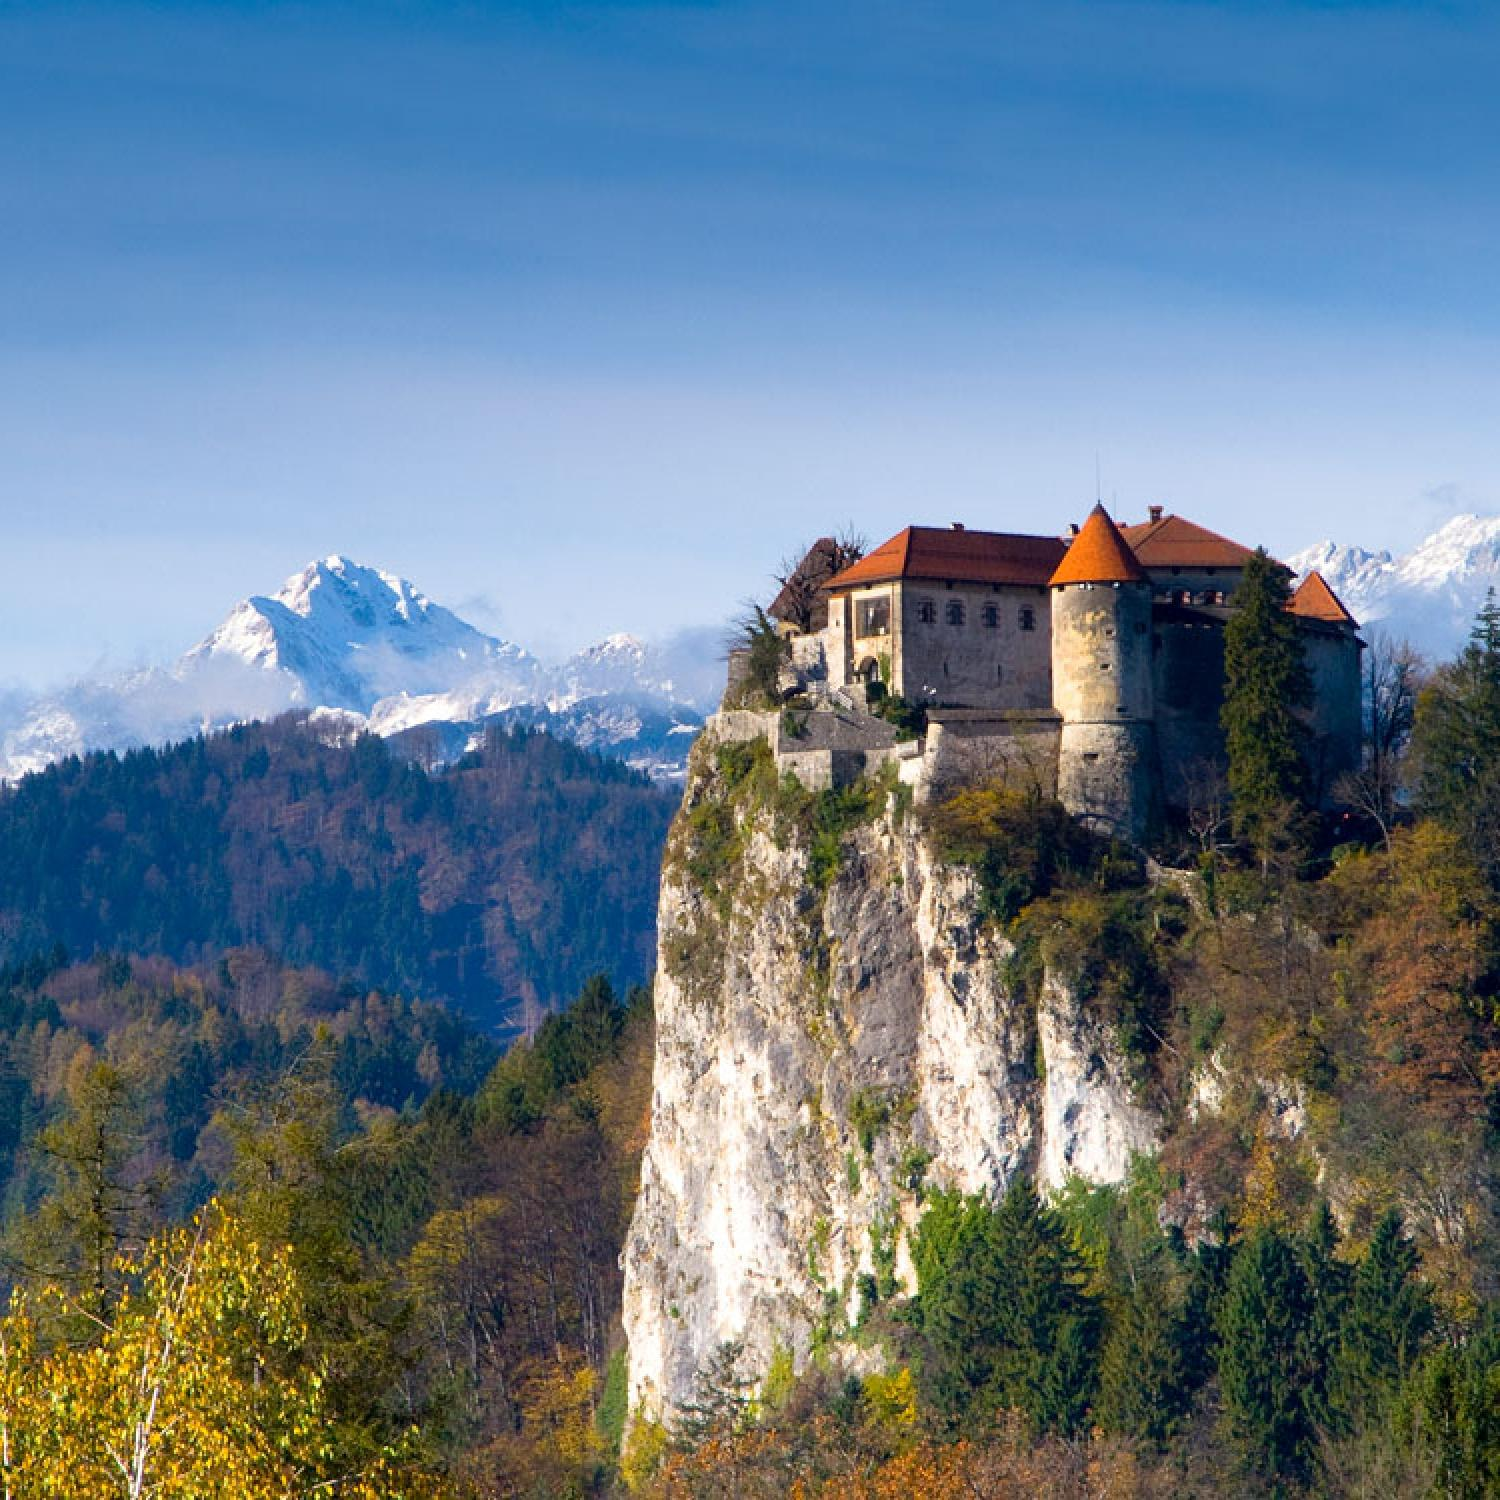 Slovenia - Bled Castle on the top of the cliff